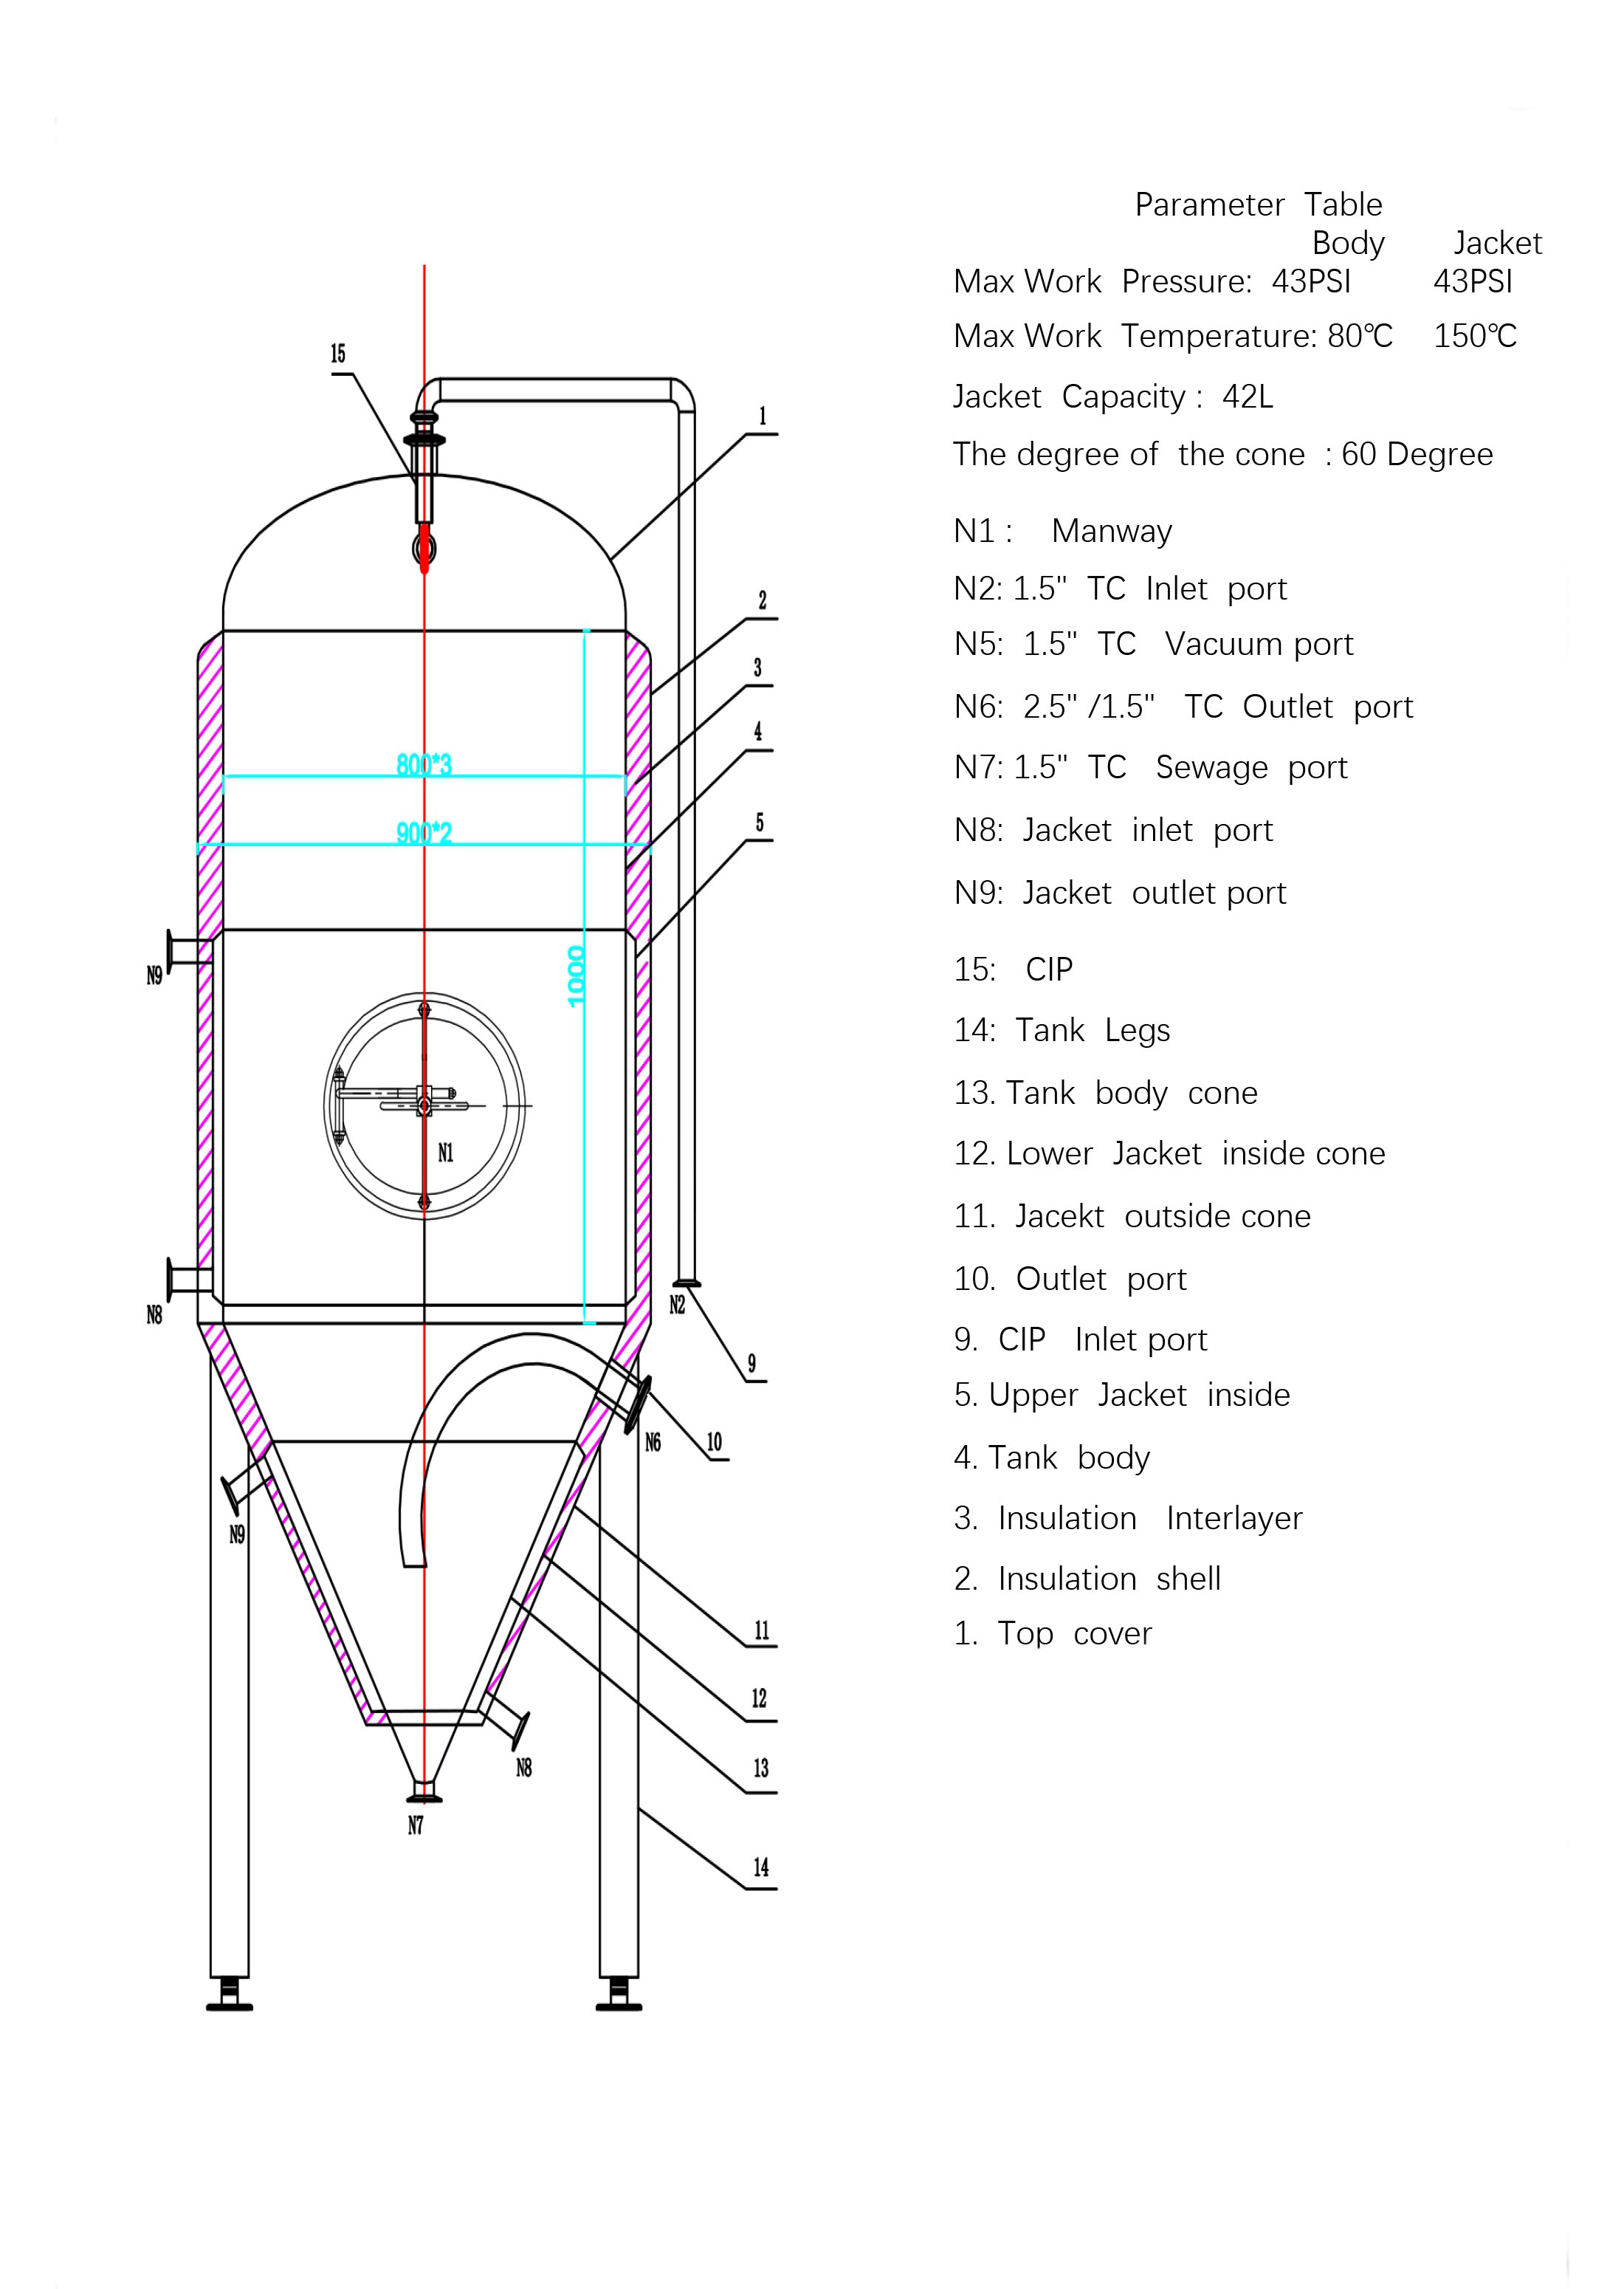 technical-information-of-this-5bbl-beer-tank-2-.jpg